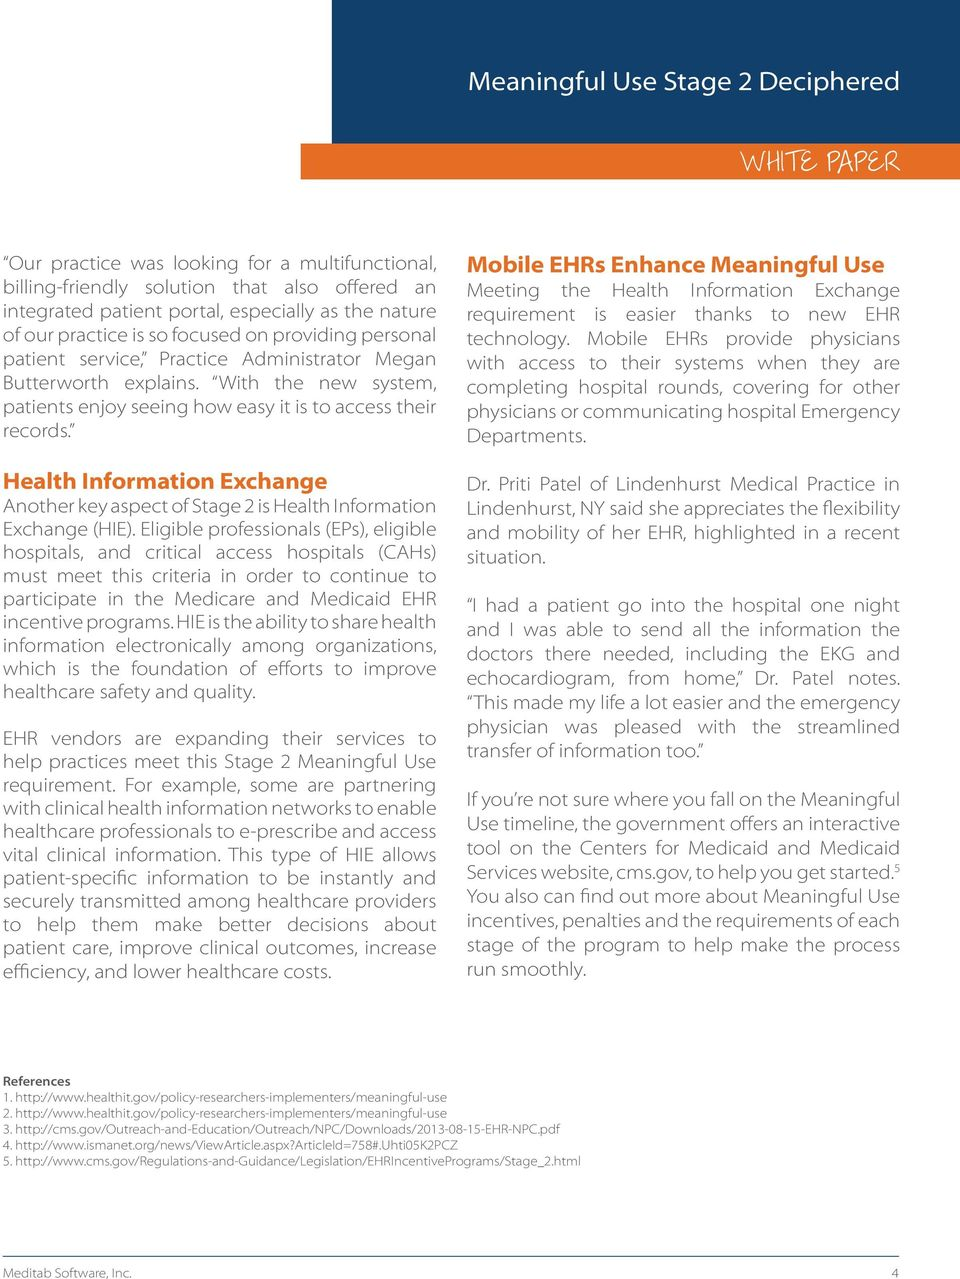 Health Information Exchange Another key aspect of Stage 2 is Health Information Exchange (HIE).